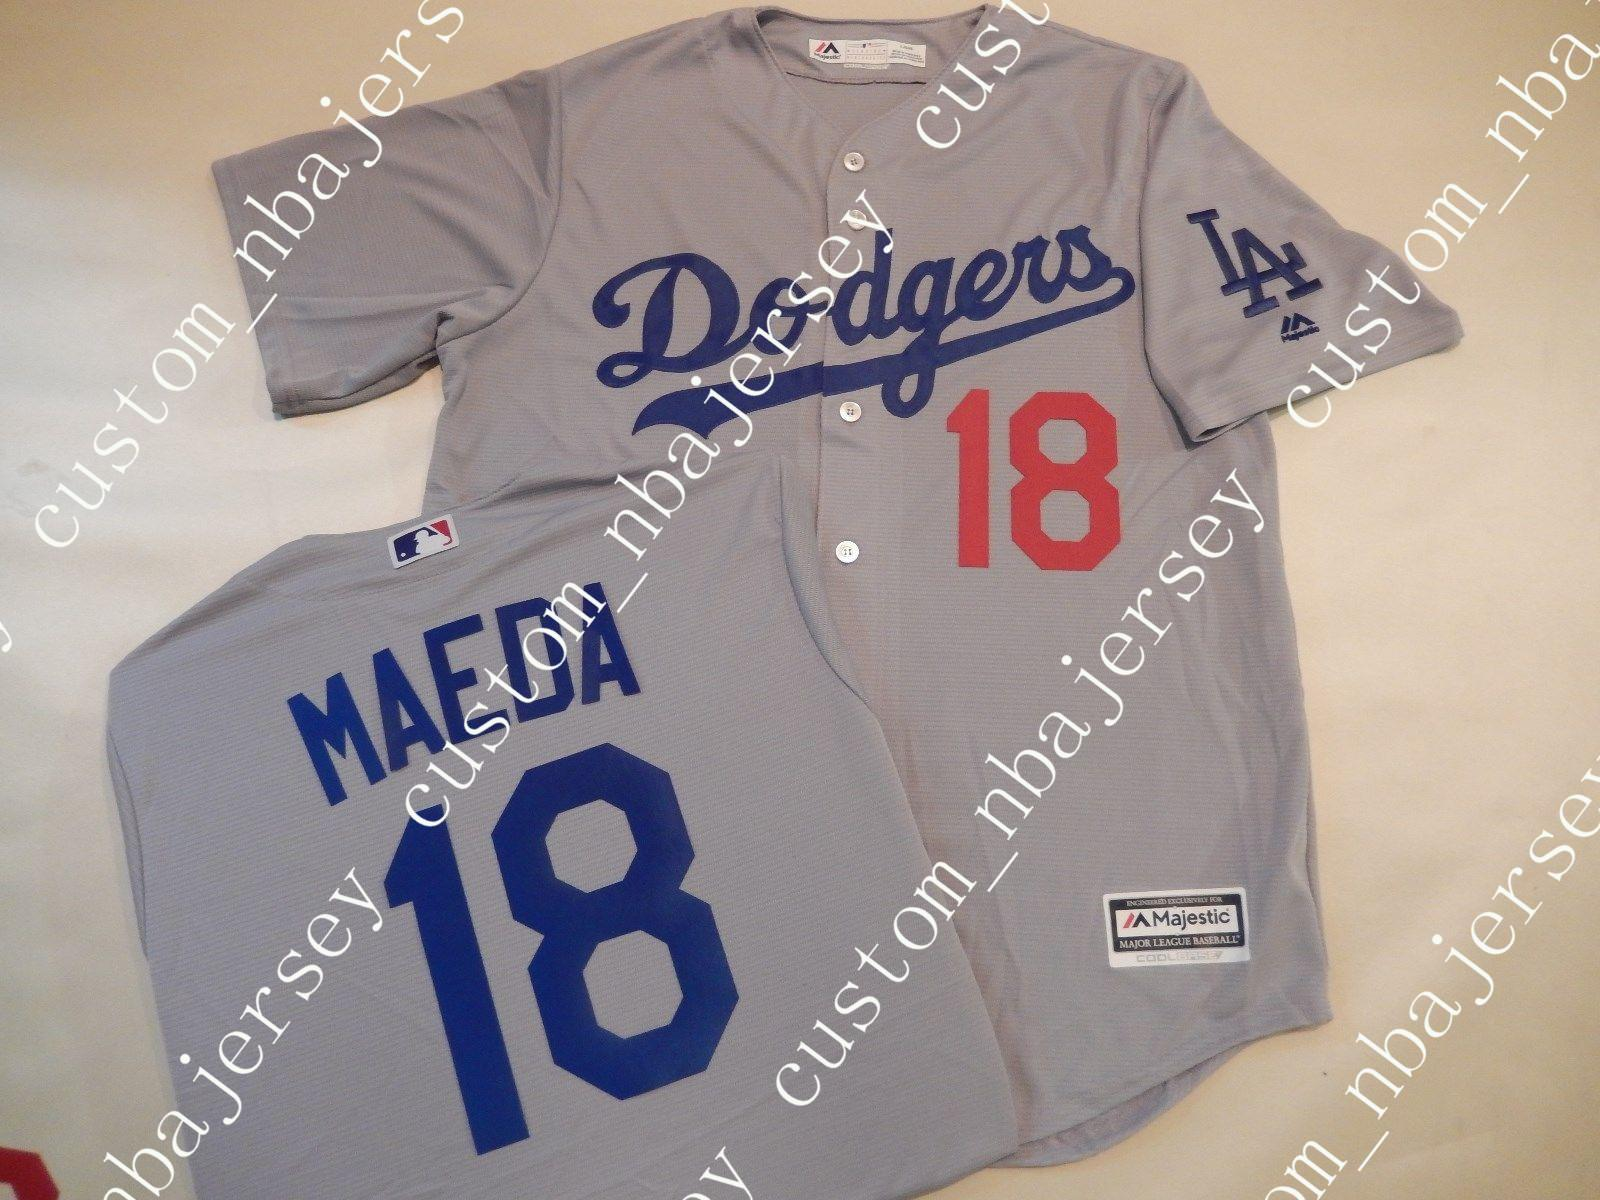 1336b14a9d4f Cheap Custom KENTA MAEDA Baseball JERSEY GRAY Stitched Customize Any Name  Number MEN WOMEN BASEBALL JERSEY XS-5XL KENTA MAEDA MAEDA BASEBALL JERSEY  KENTA ...